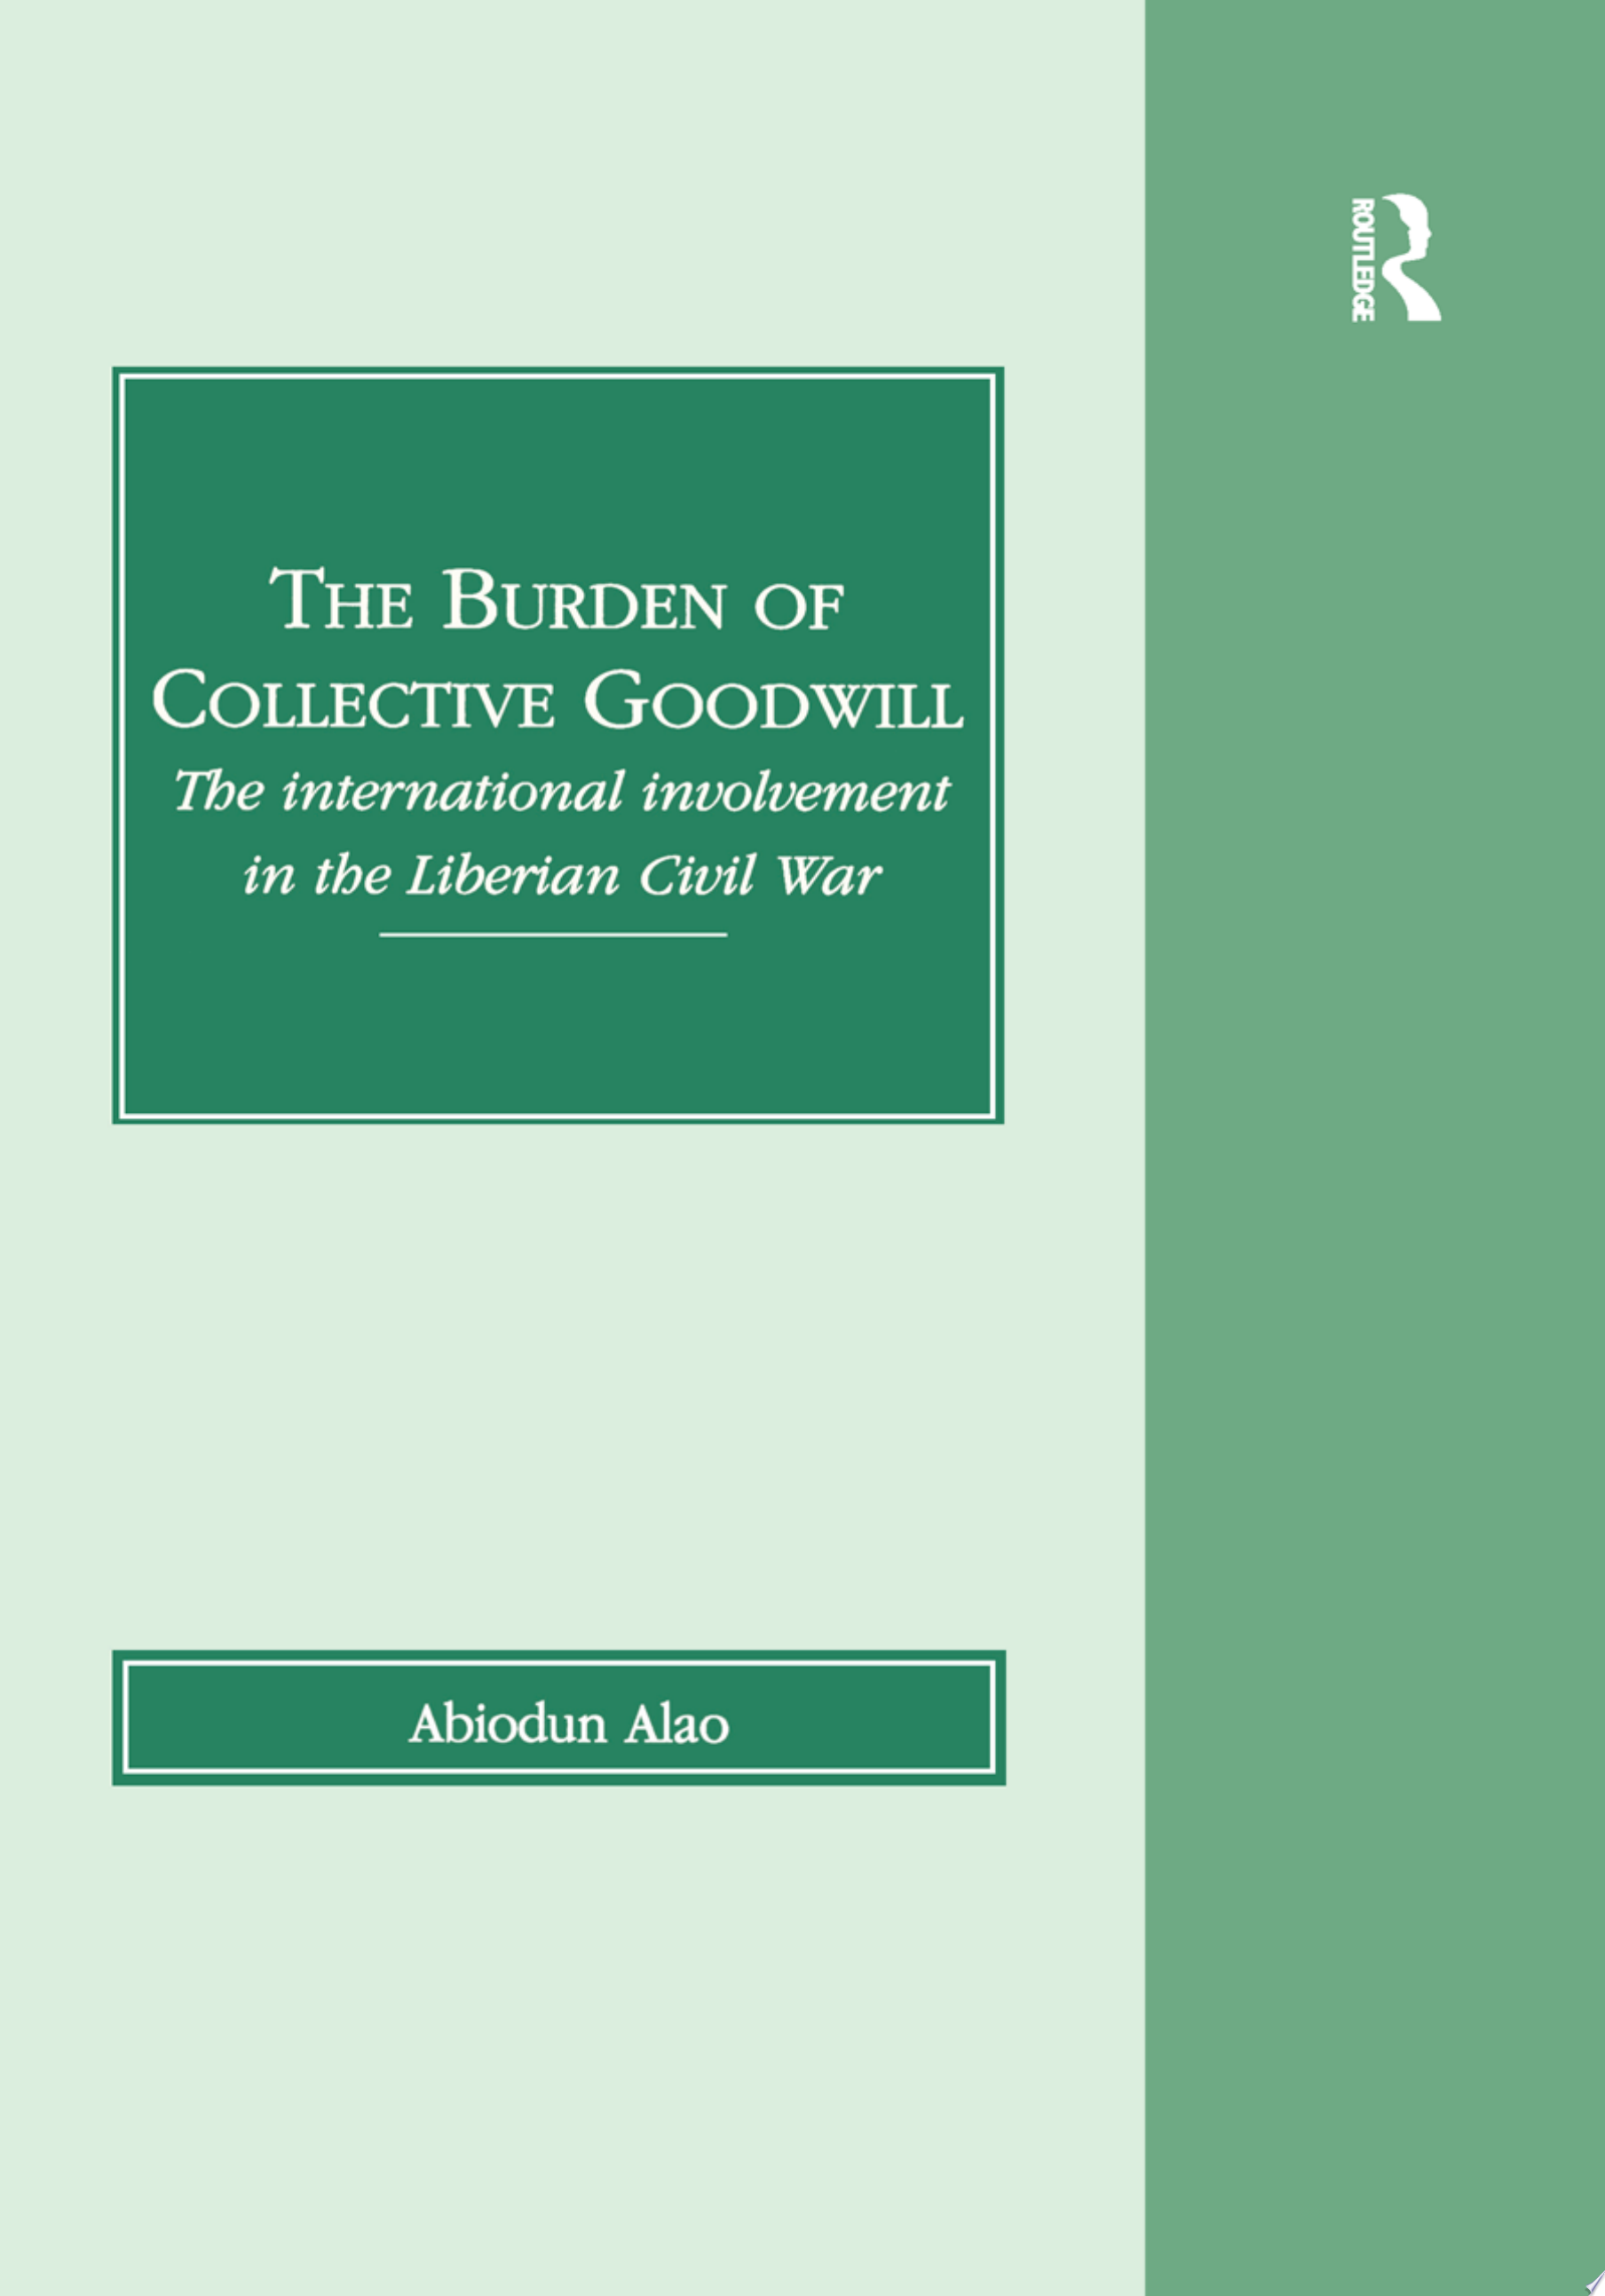 The Burden of Collective Goodwill